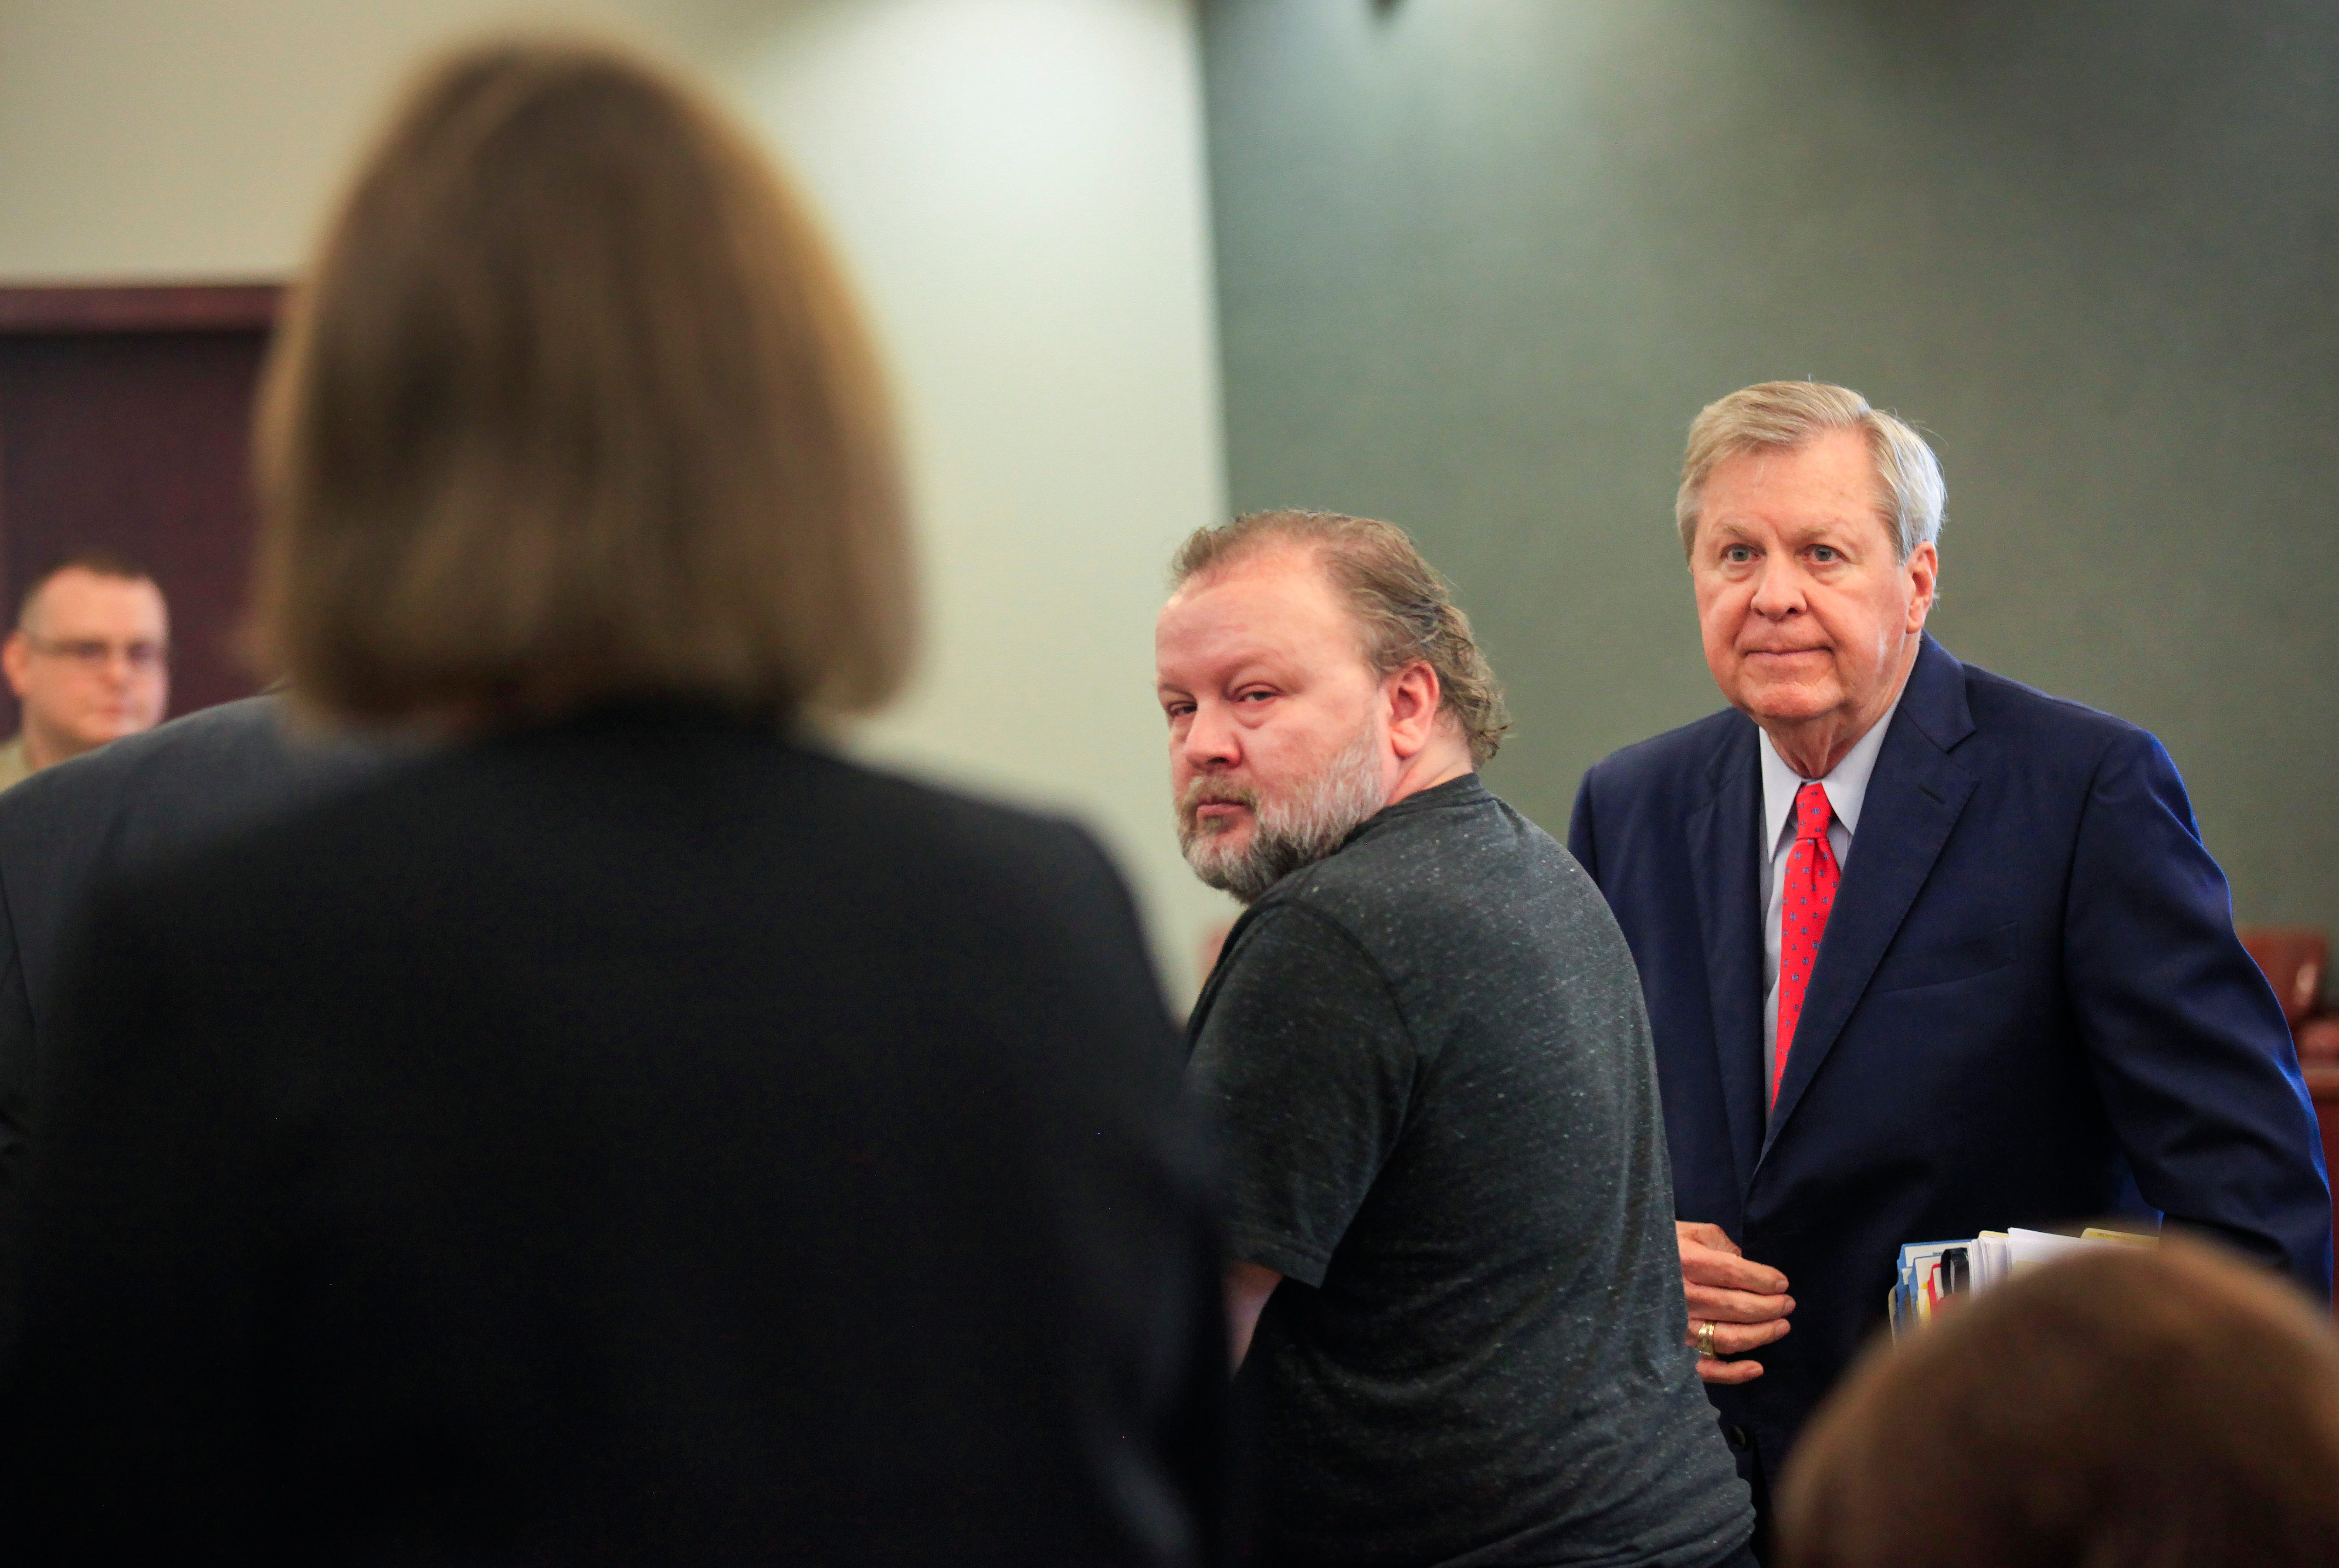 Benjamin Lambert, center, was arraigned and pleaded not guilty to charges of child sex trafficking at the Christian County courthouse on Wednesday, Oct. 3, 2018. Also pictured is one of Lambert's lawyers, Dee Wampler.